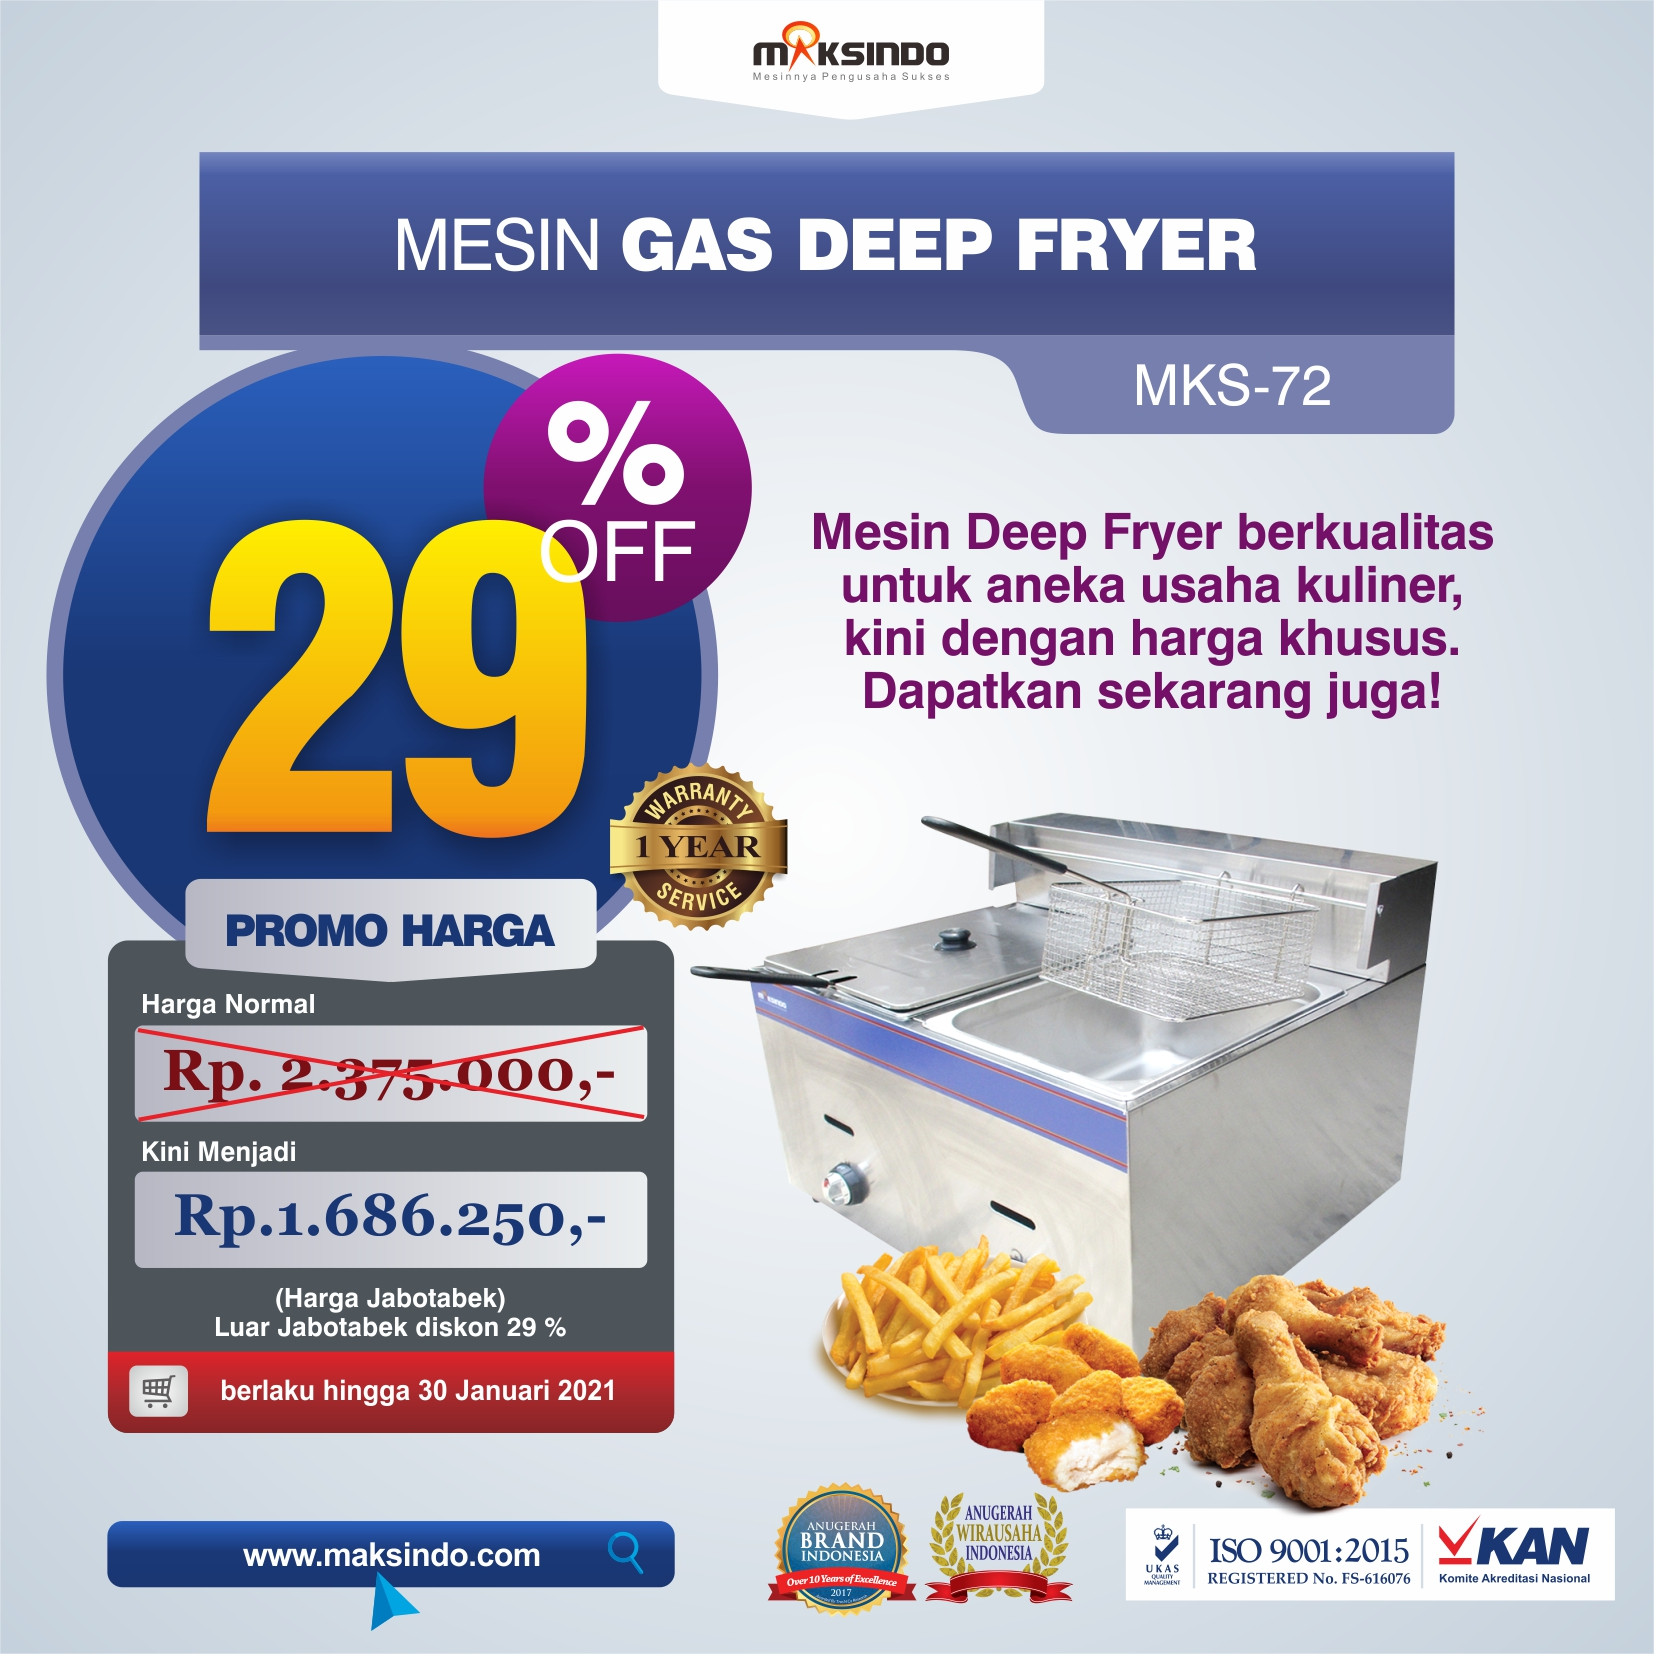 Jual Mesin Gas Deep Fryer MKS-72 di Medan